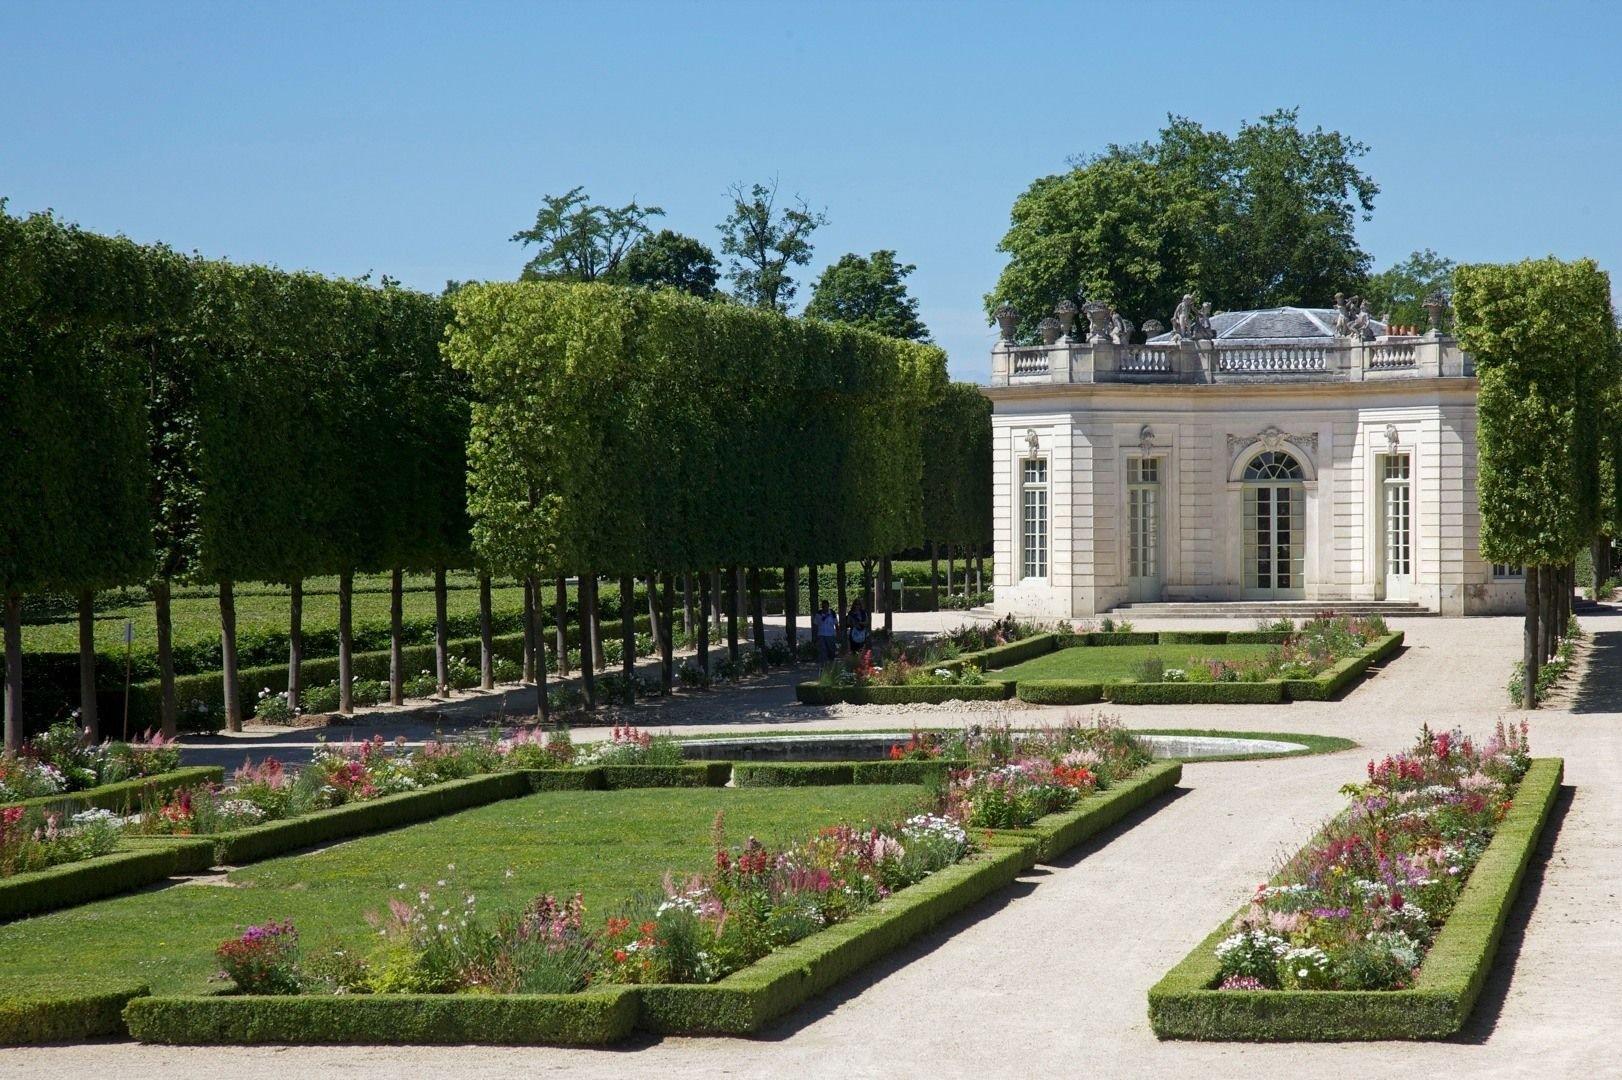 Versailles Garten Image Detail For Petit Trianon By Jean Marie Hullot In Palace Of